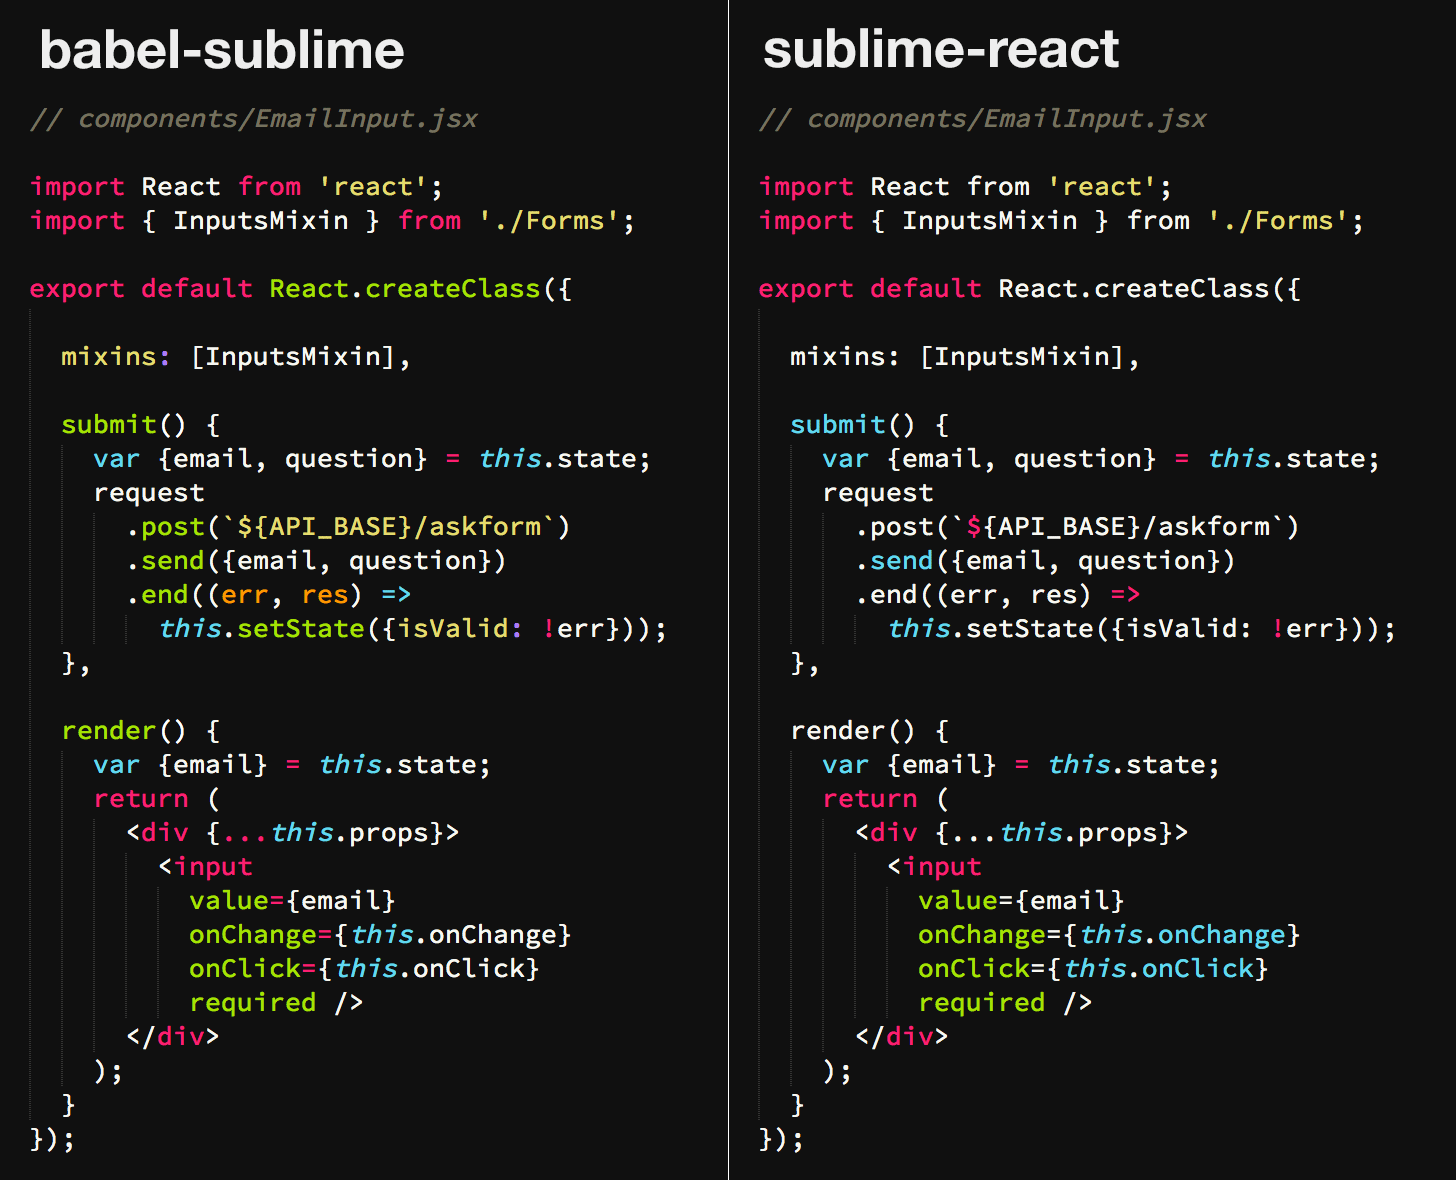 Being Oriented to the Sublime Text Plugins for JavaScript Developers